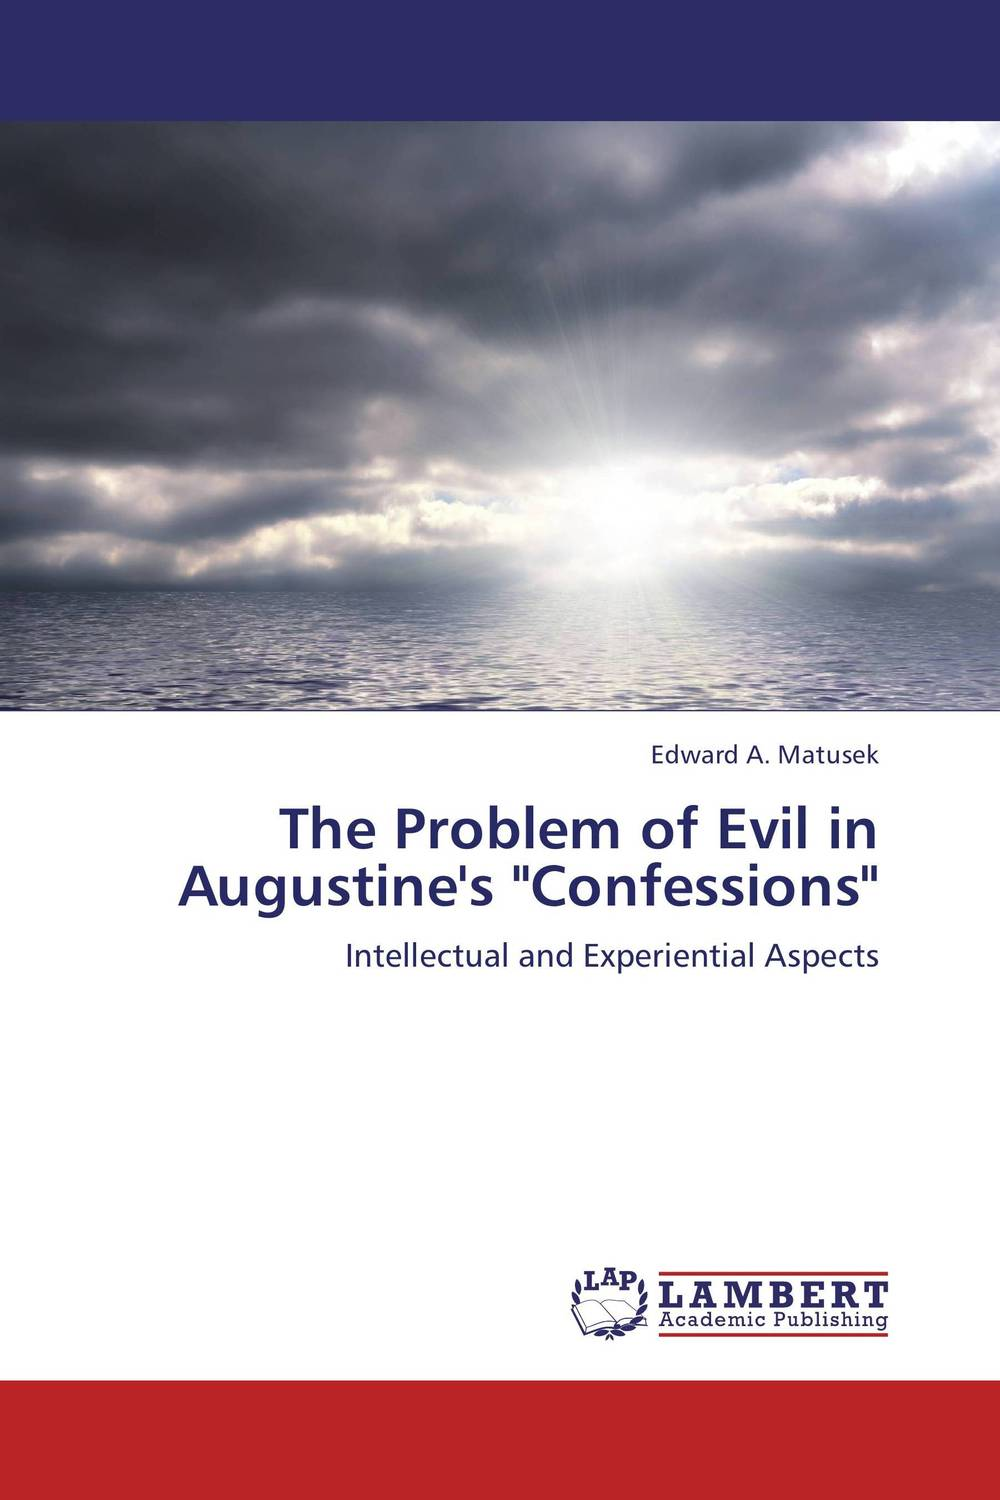 The Problem of Evil in Augustine's Confessions childs laura steeped in evil